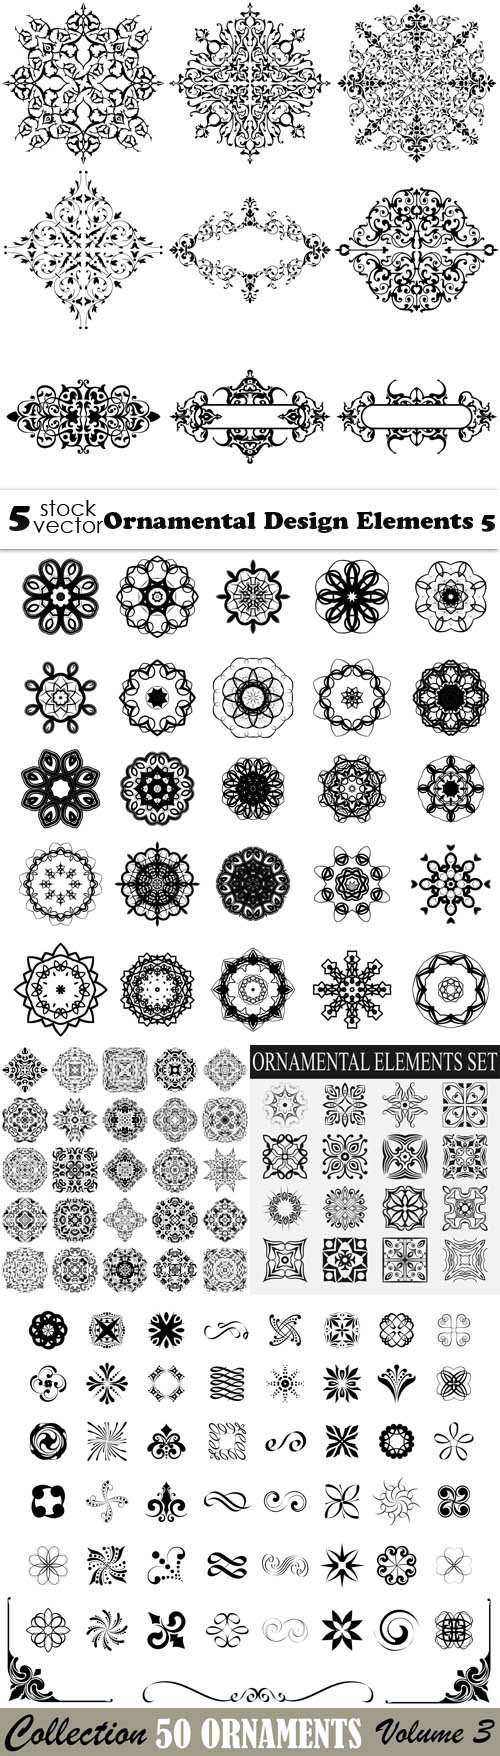 Vectors - Ornamental Design Elements 5